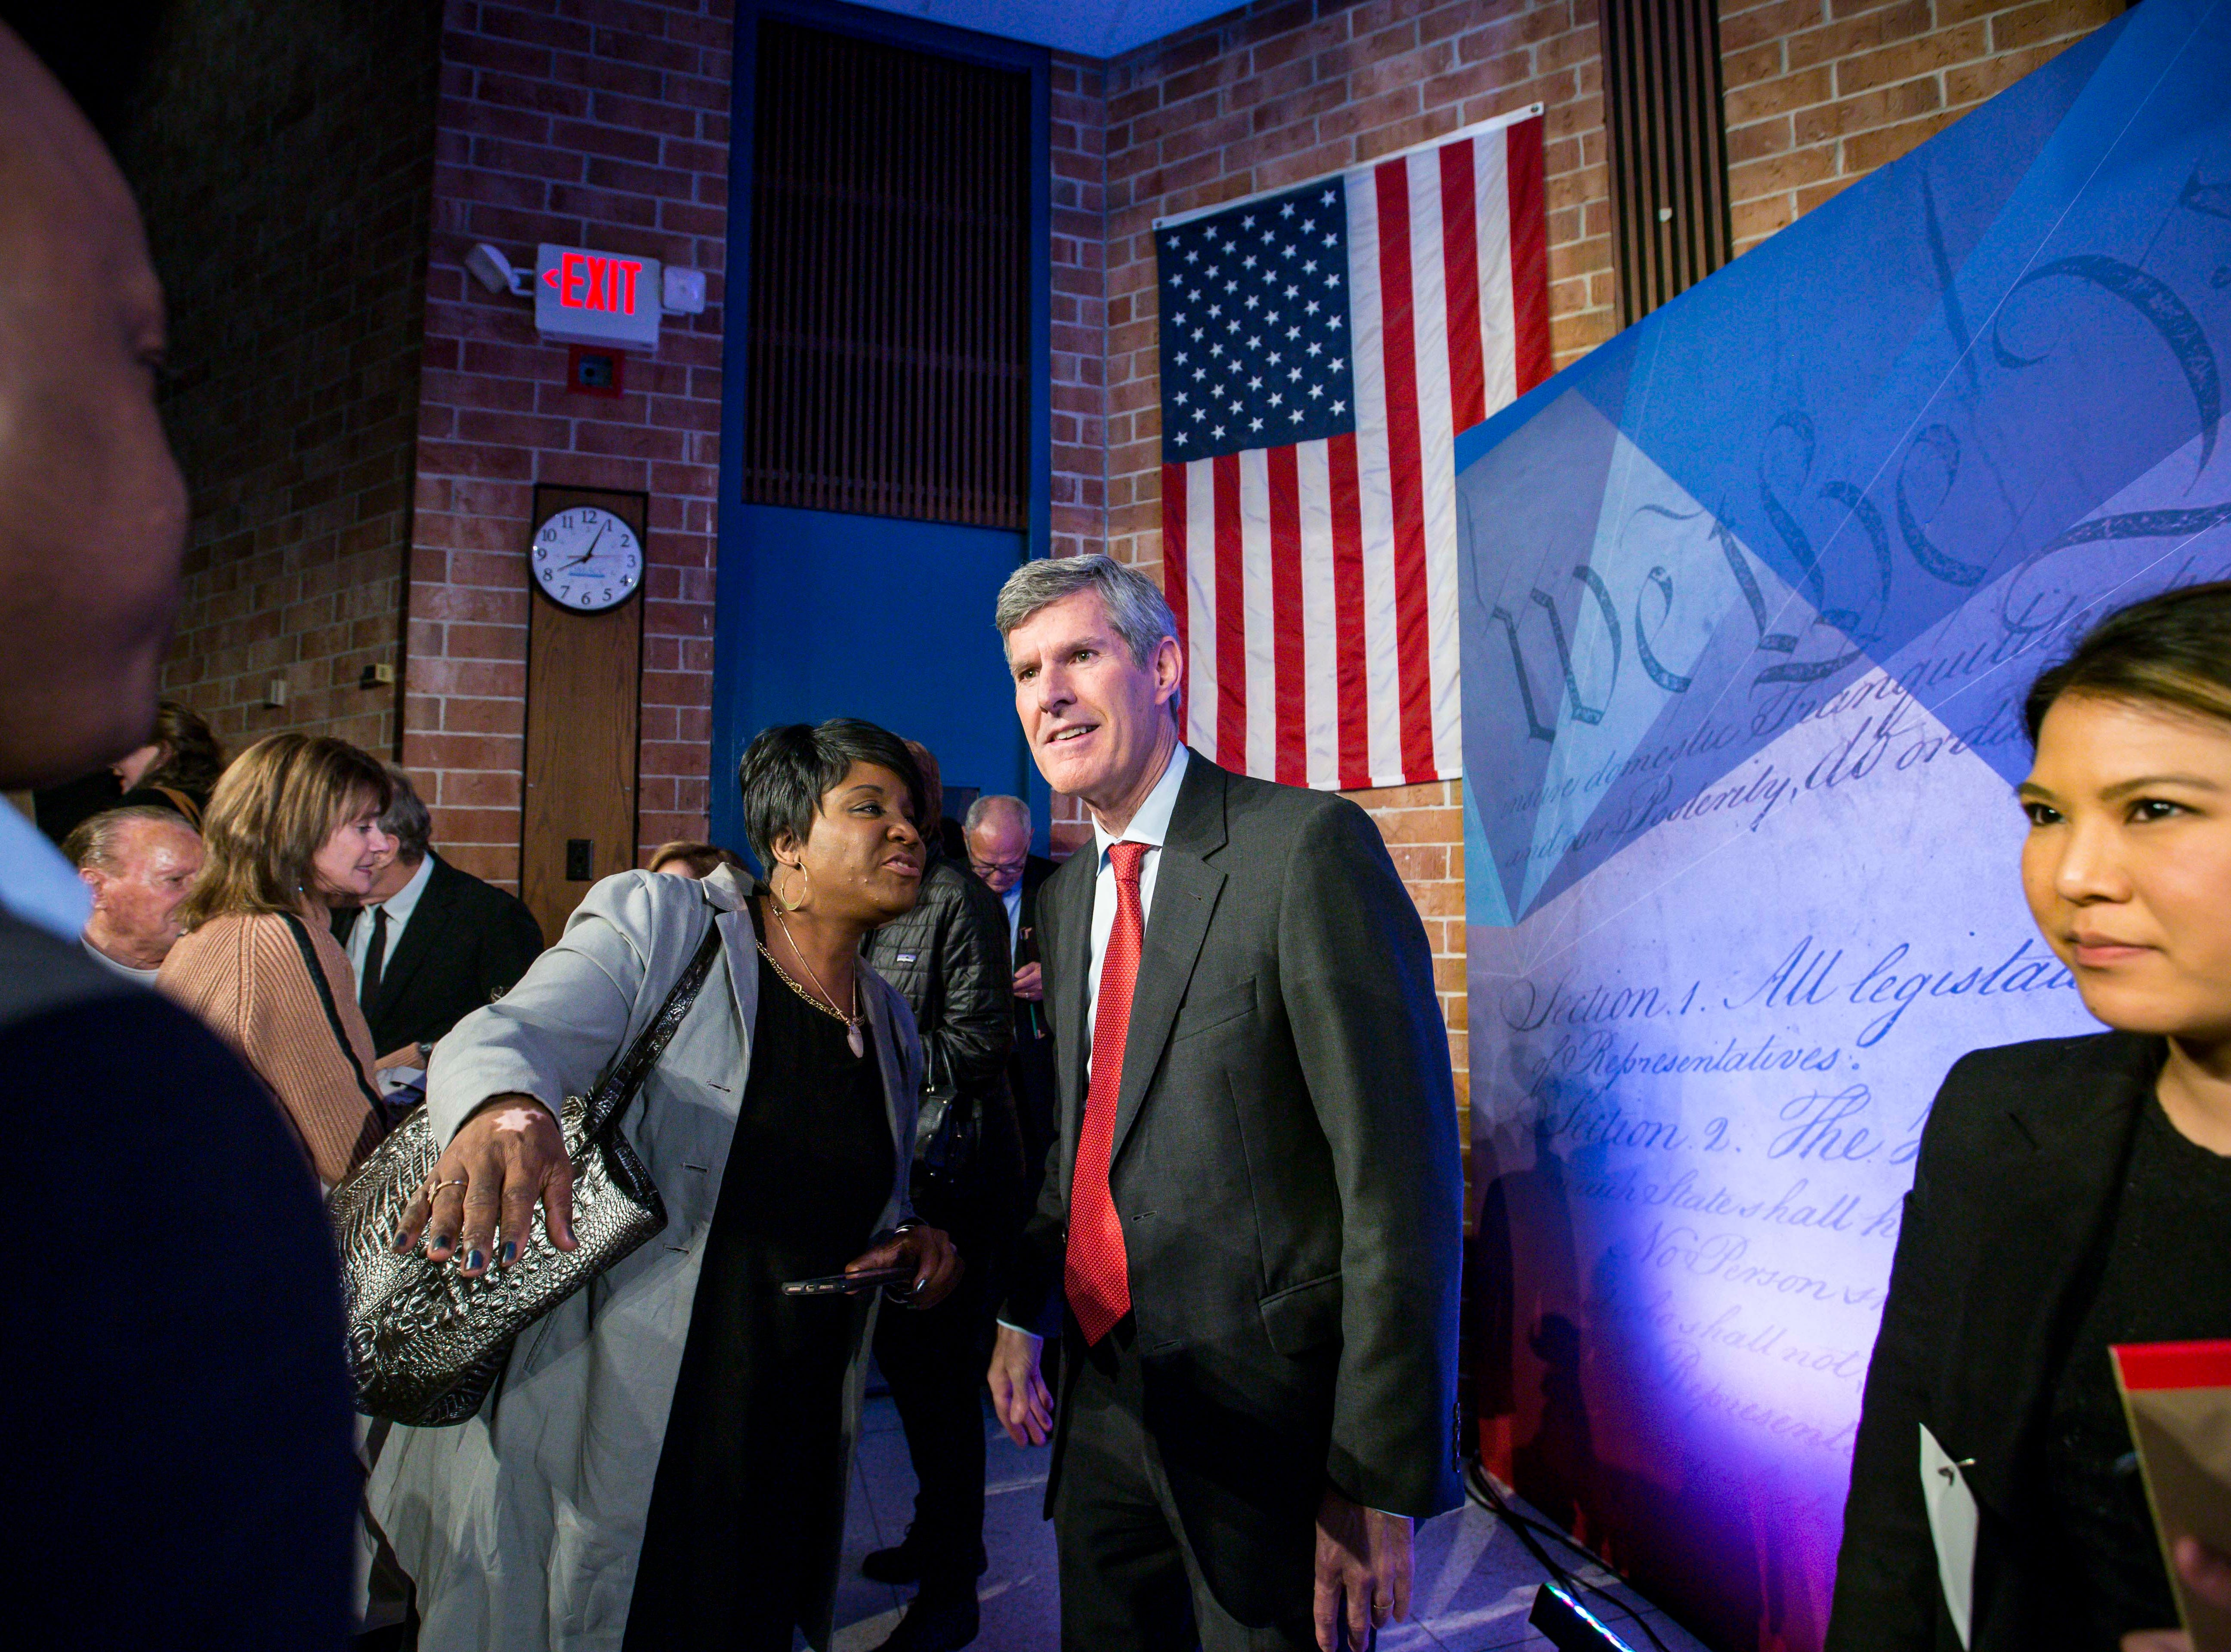 Democratic challenger Fred Hubbell greets family and friends after the debate Wednesday, Oct. 10, 2018, at Des Moines Area Community College in Ankeny, Iowa.